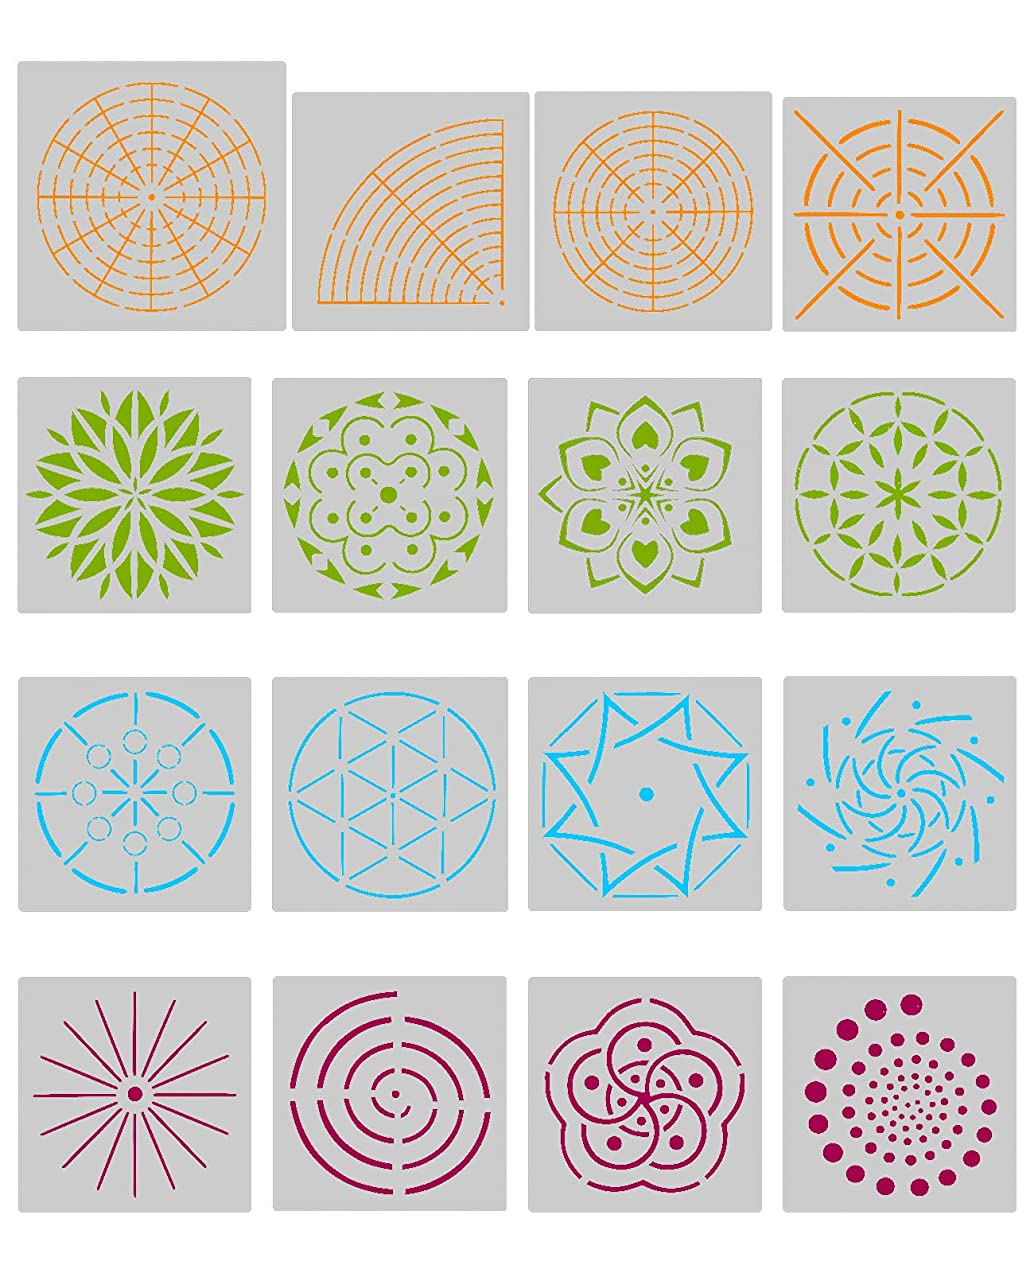 Biubee 16 Pcs Plastic Dotting Stencils- Different Patterns Dot Painting Templates for Stone Wall Art, Canvas, Wood Furniture Painting